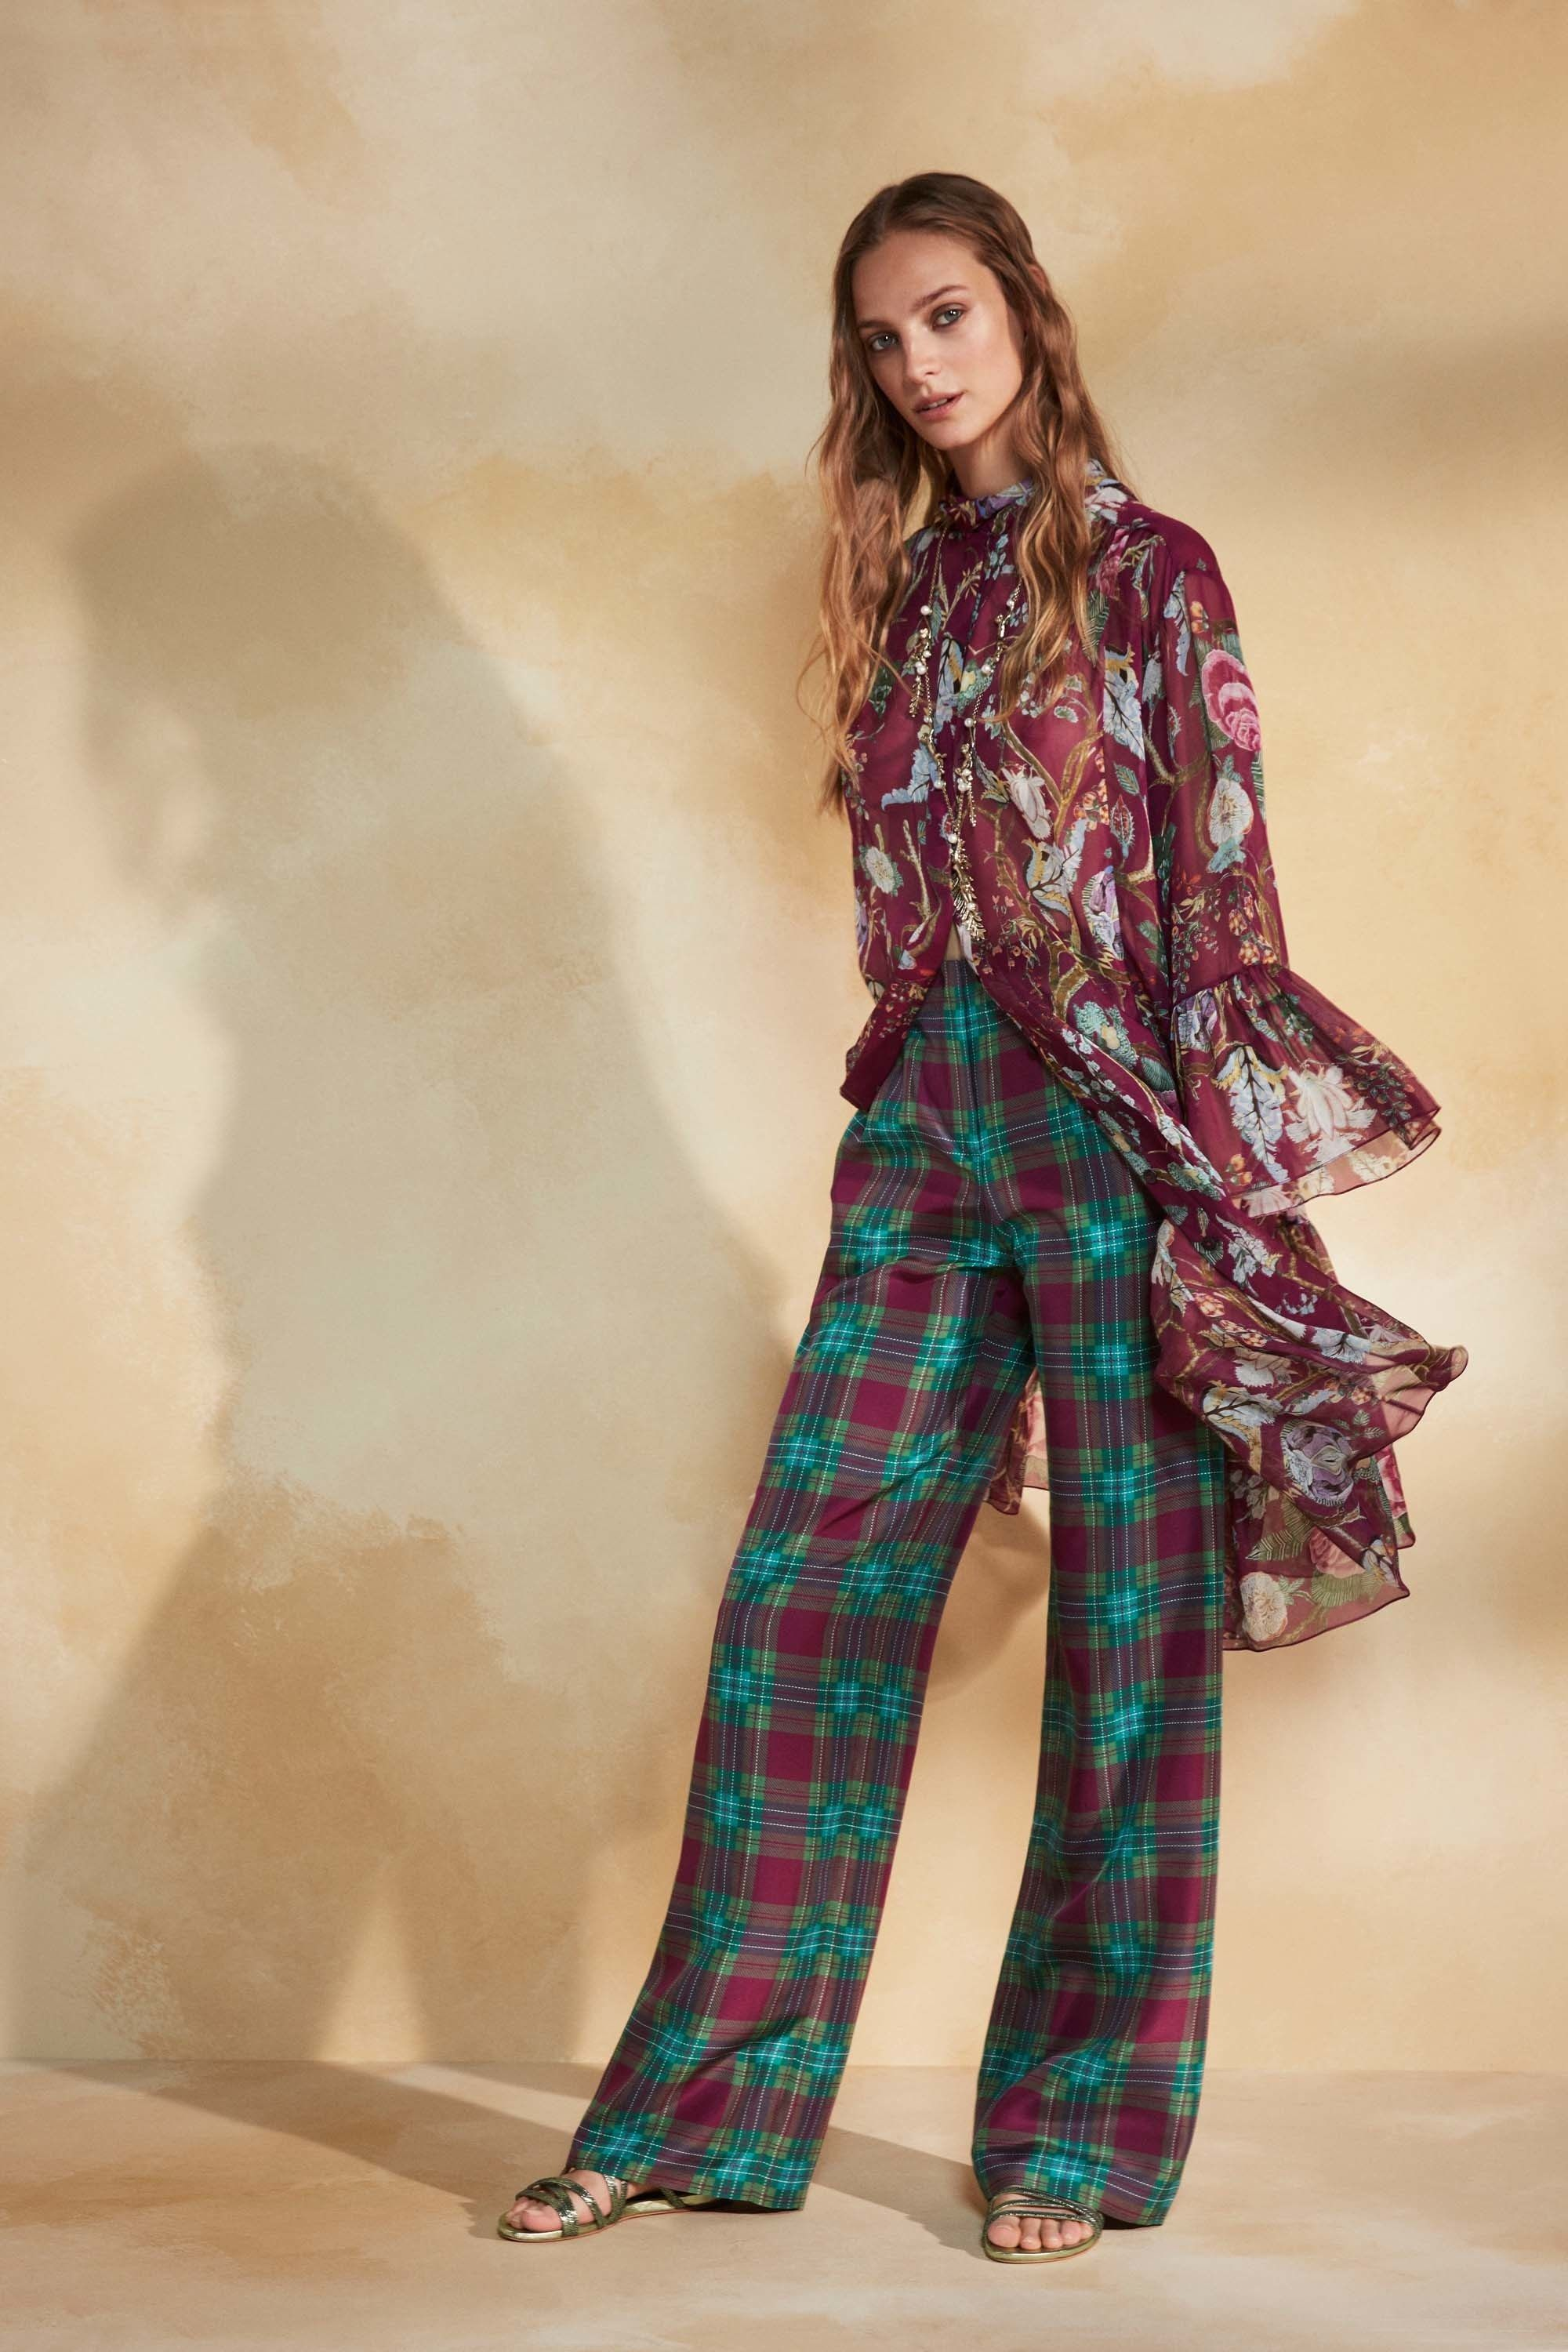 Alberta Ferretti Resort 2018 Collection Photos - Vogue#rexfabrics